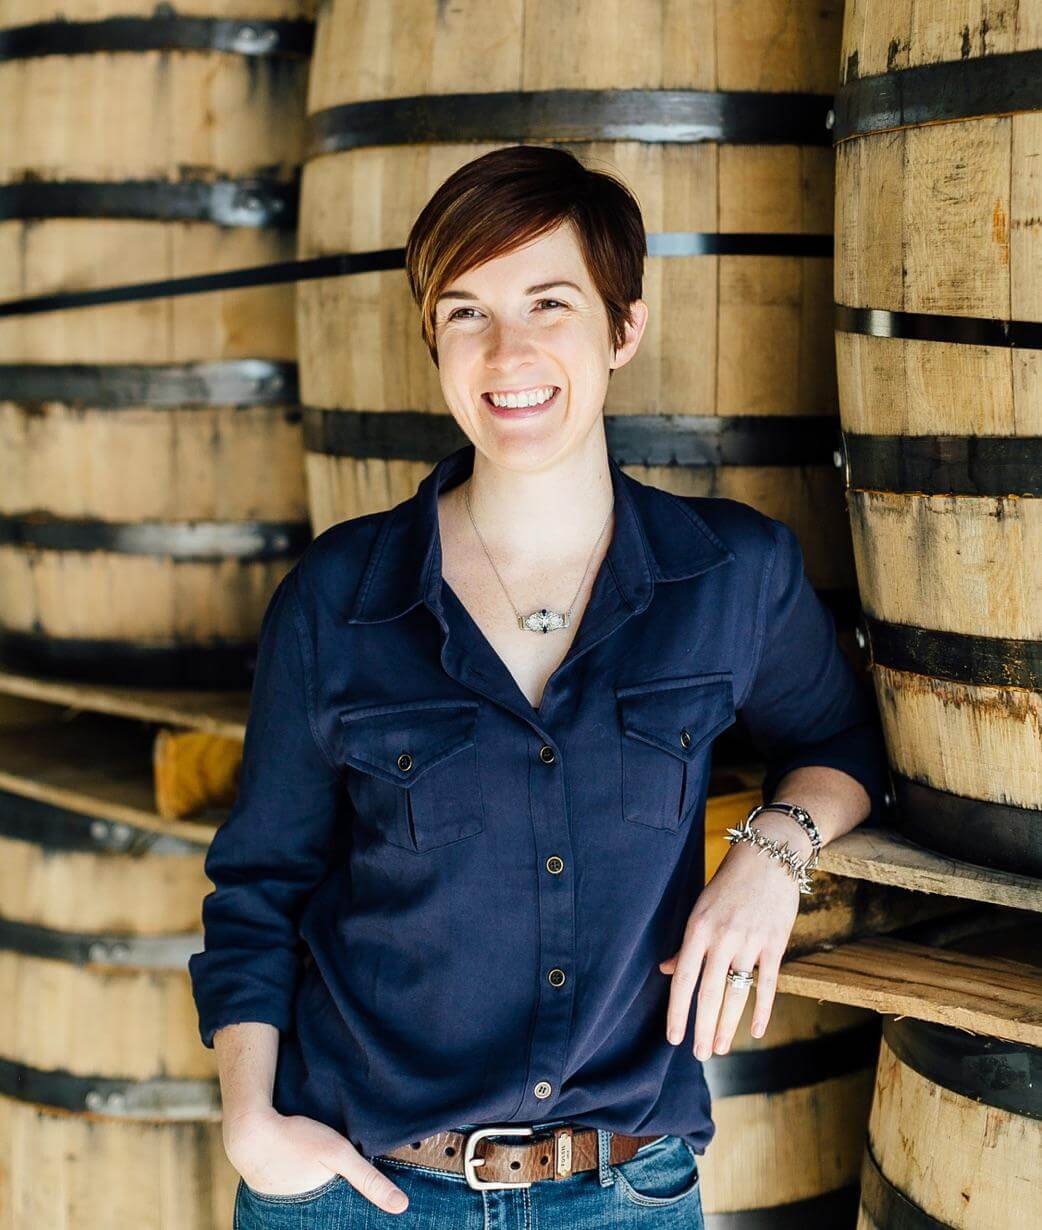 Master Distiller Alex Castle leaning on whiskey barrels and smiling